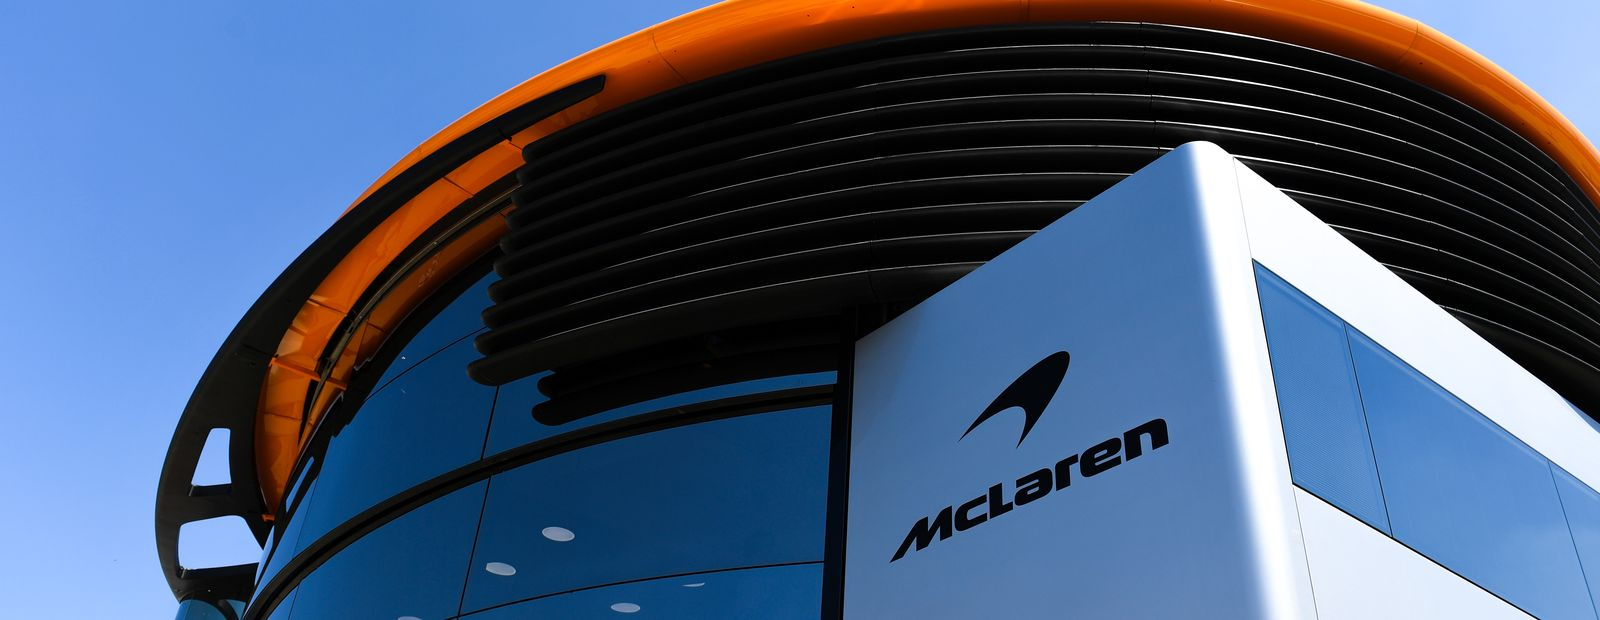 McLaren Racing announces global partnership with British American Tobacco